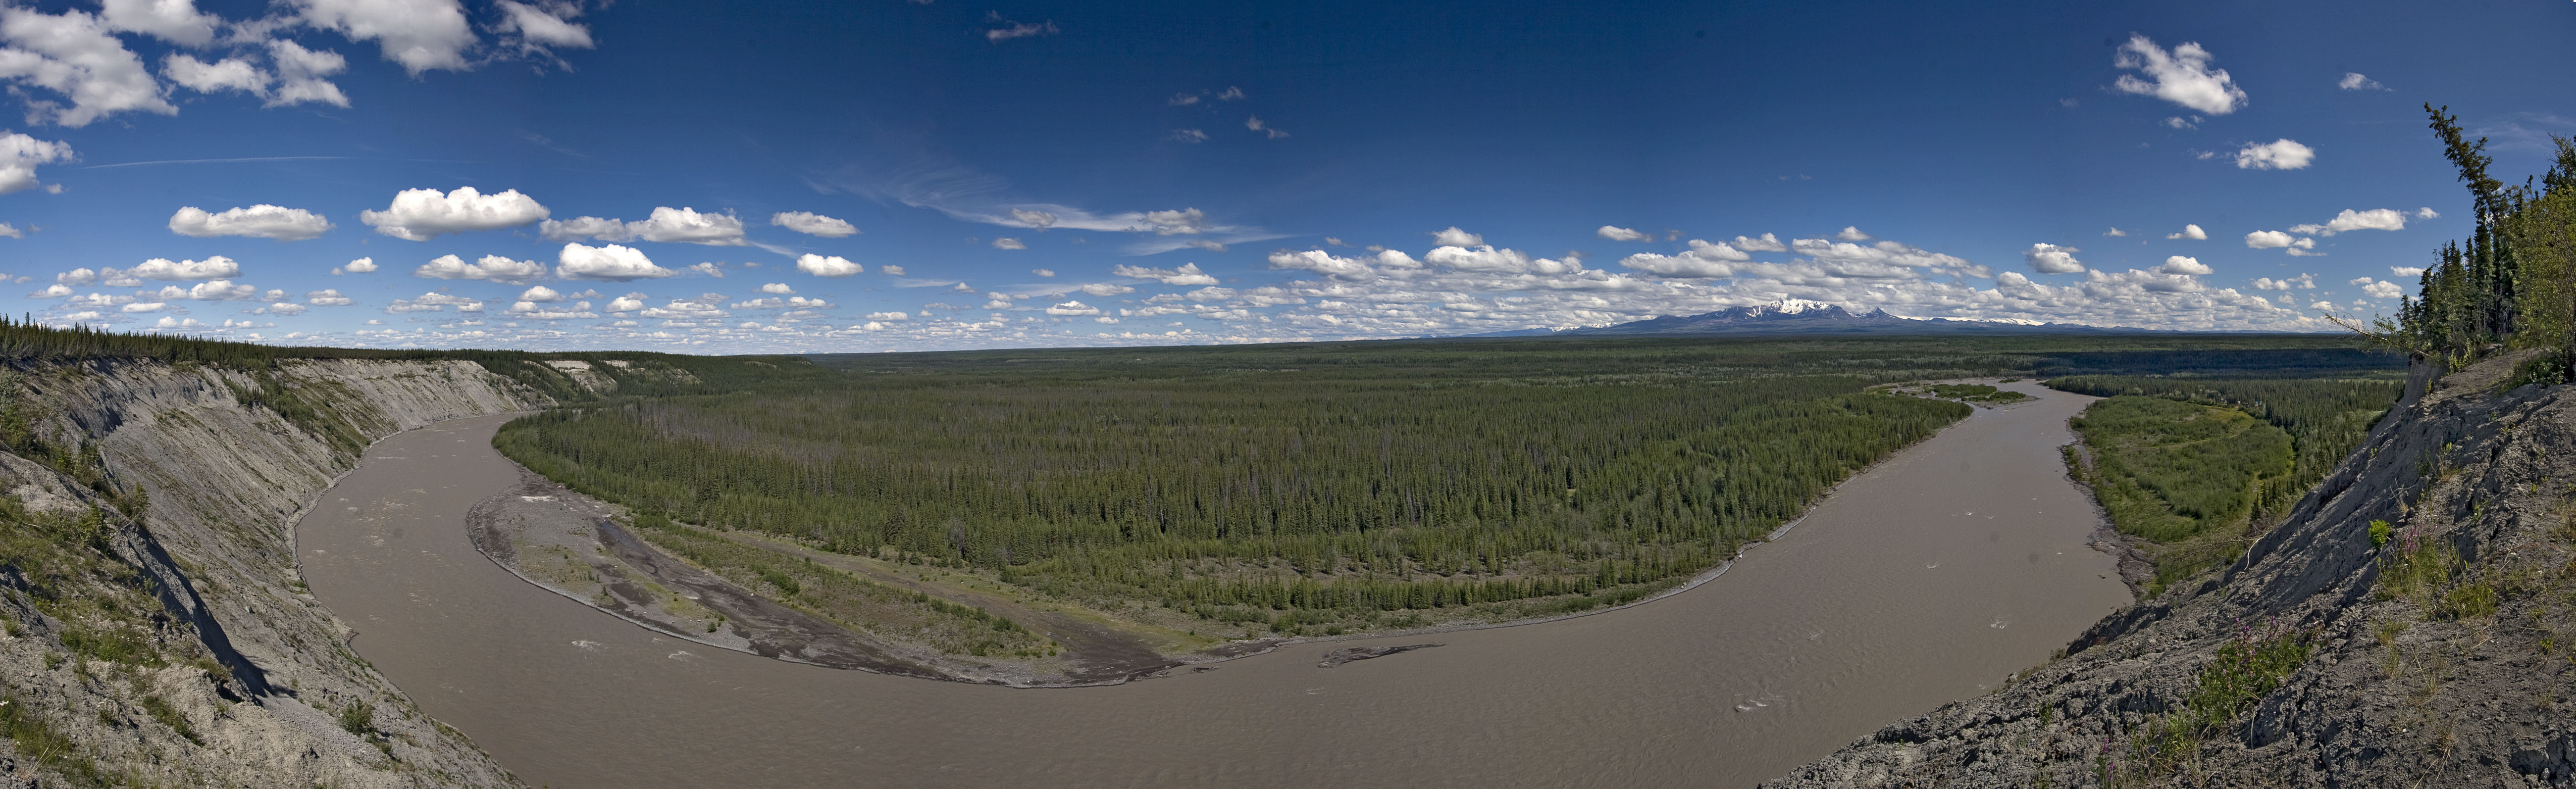 The Copper River is another of Alaska's major glacial drainages, hosting huge salmon runs which spread out more thinly into its clearwater tributaries to spawn.  